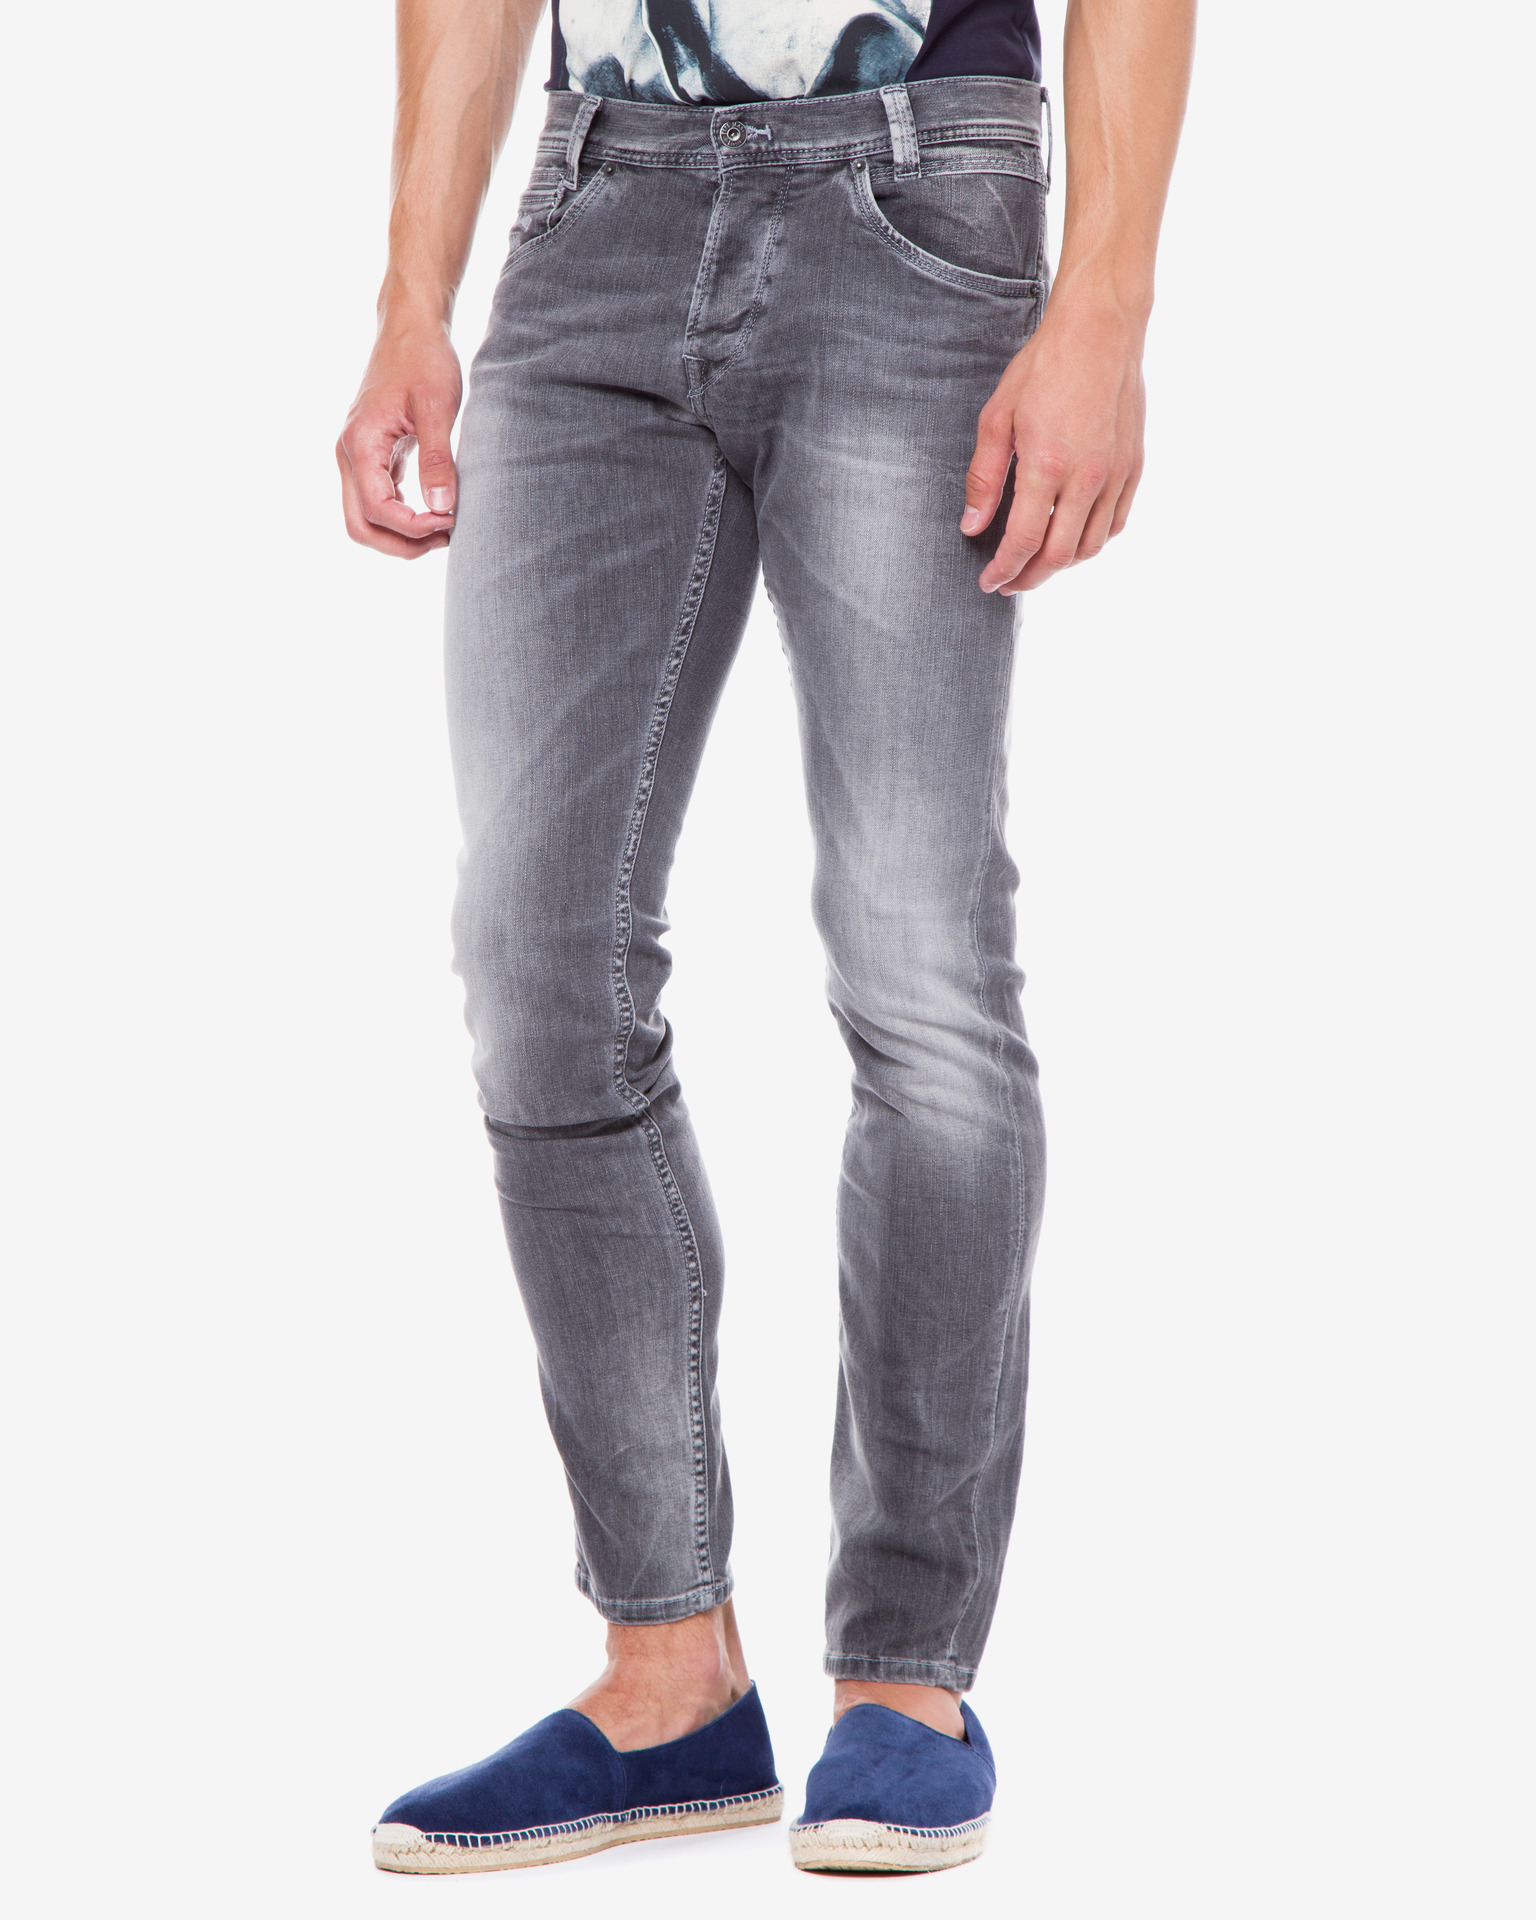 Pepe Jeans - Spike Jeans  eafe2d4a63